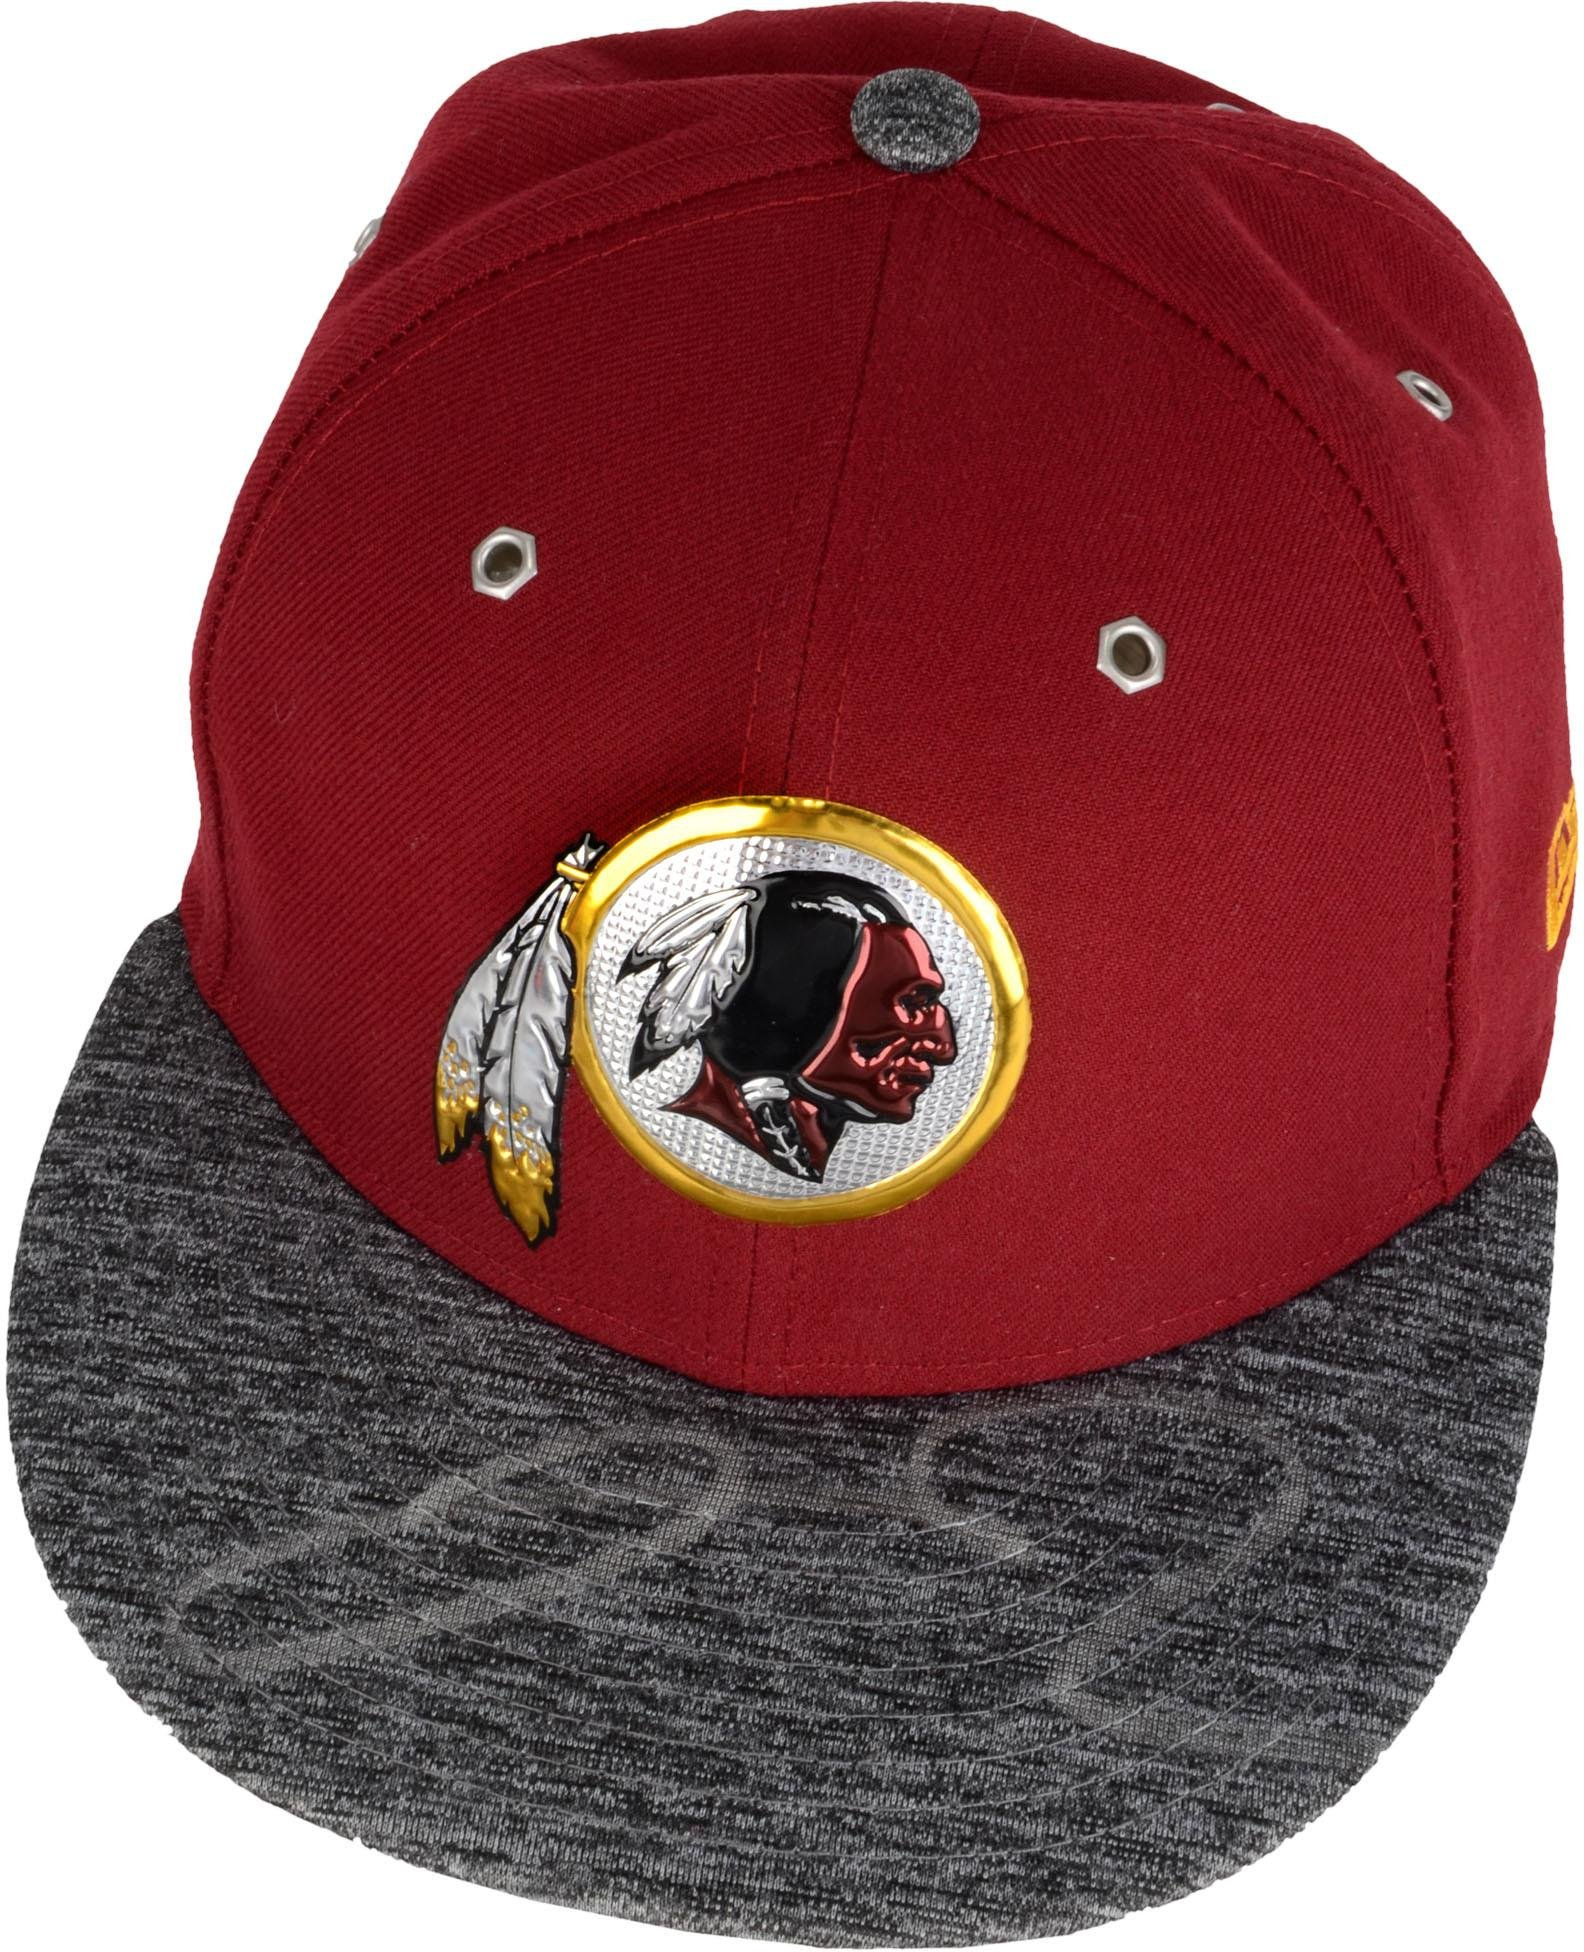 Josh Doctson Washington Redskins Autographed New Era 2016 Draft Day Cap Fanatics Authentic Certified